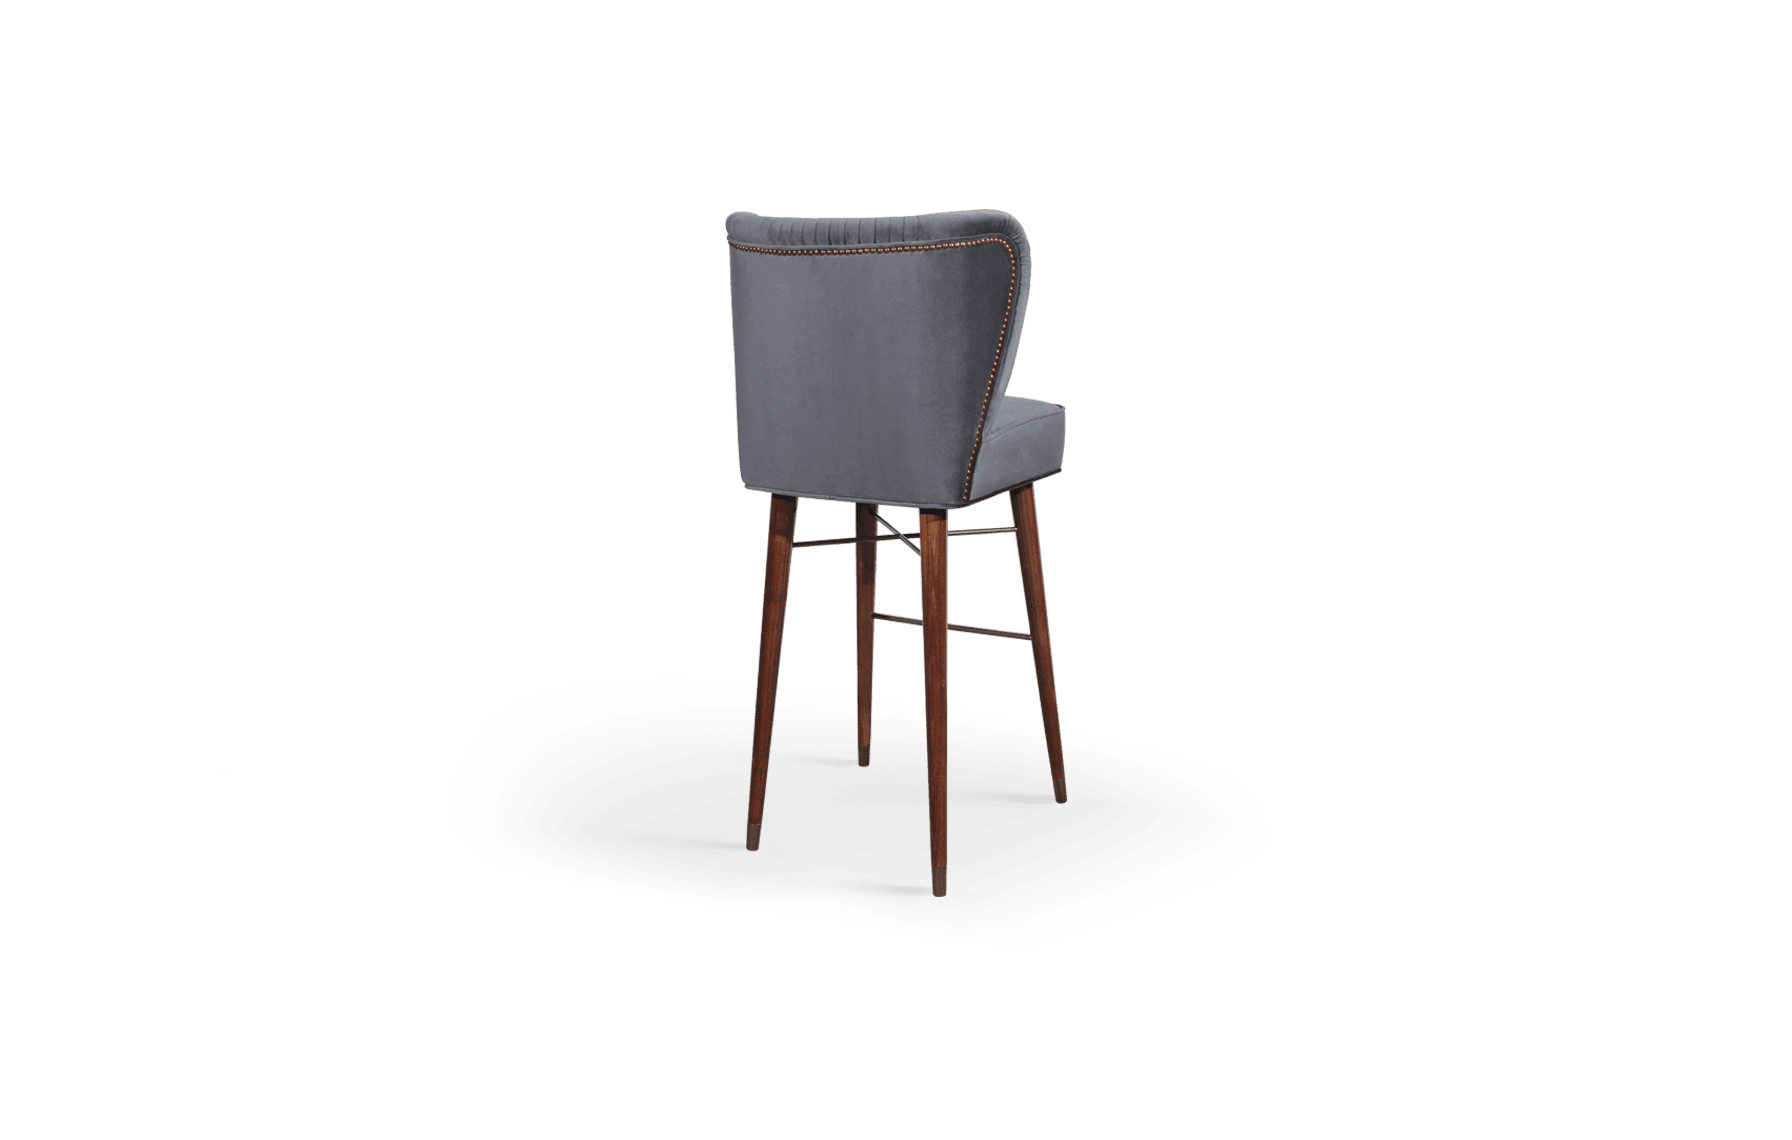 Visconti Mid-Century Modern Bar Chair in grey cotton velvet